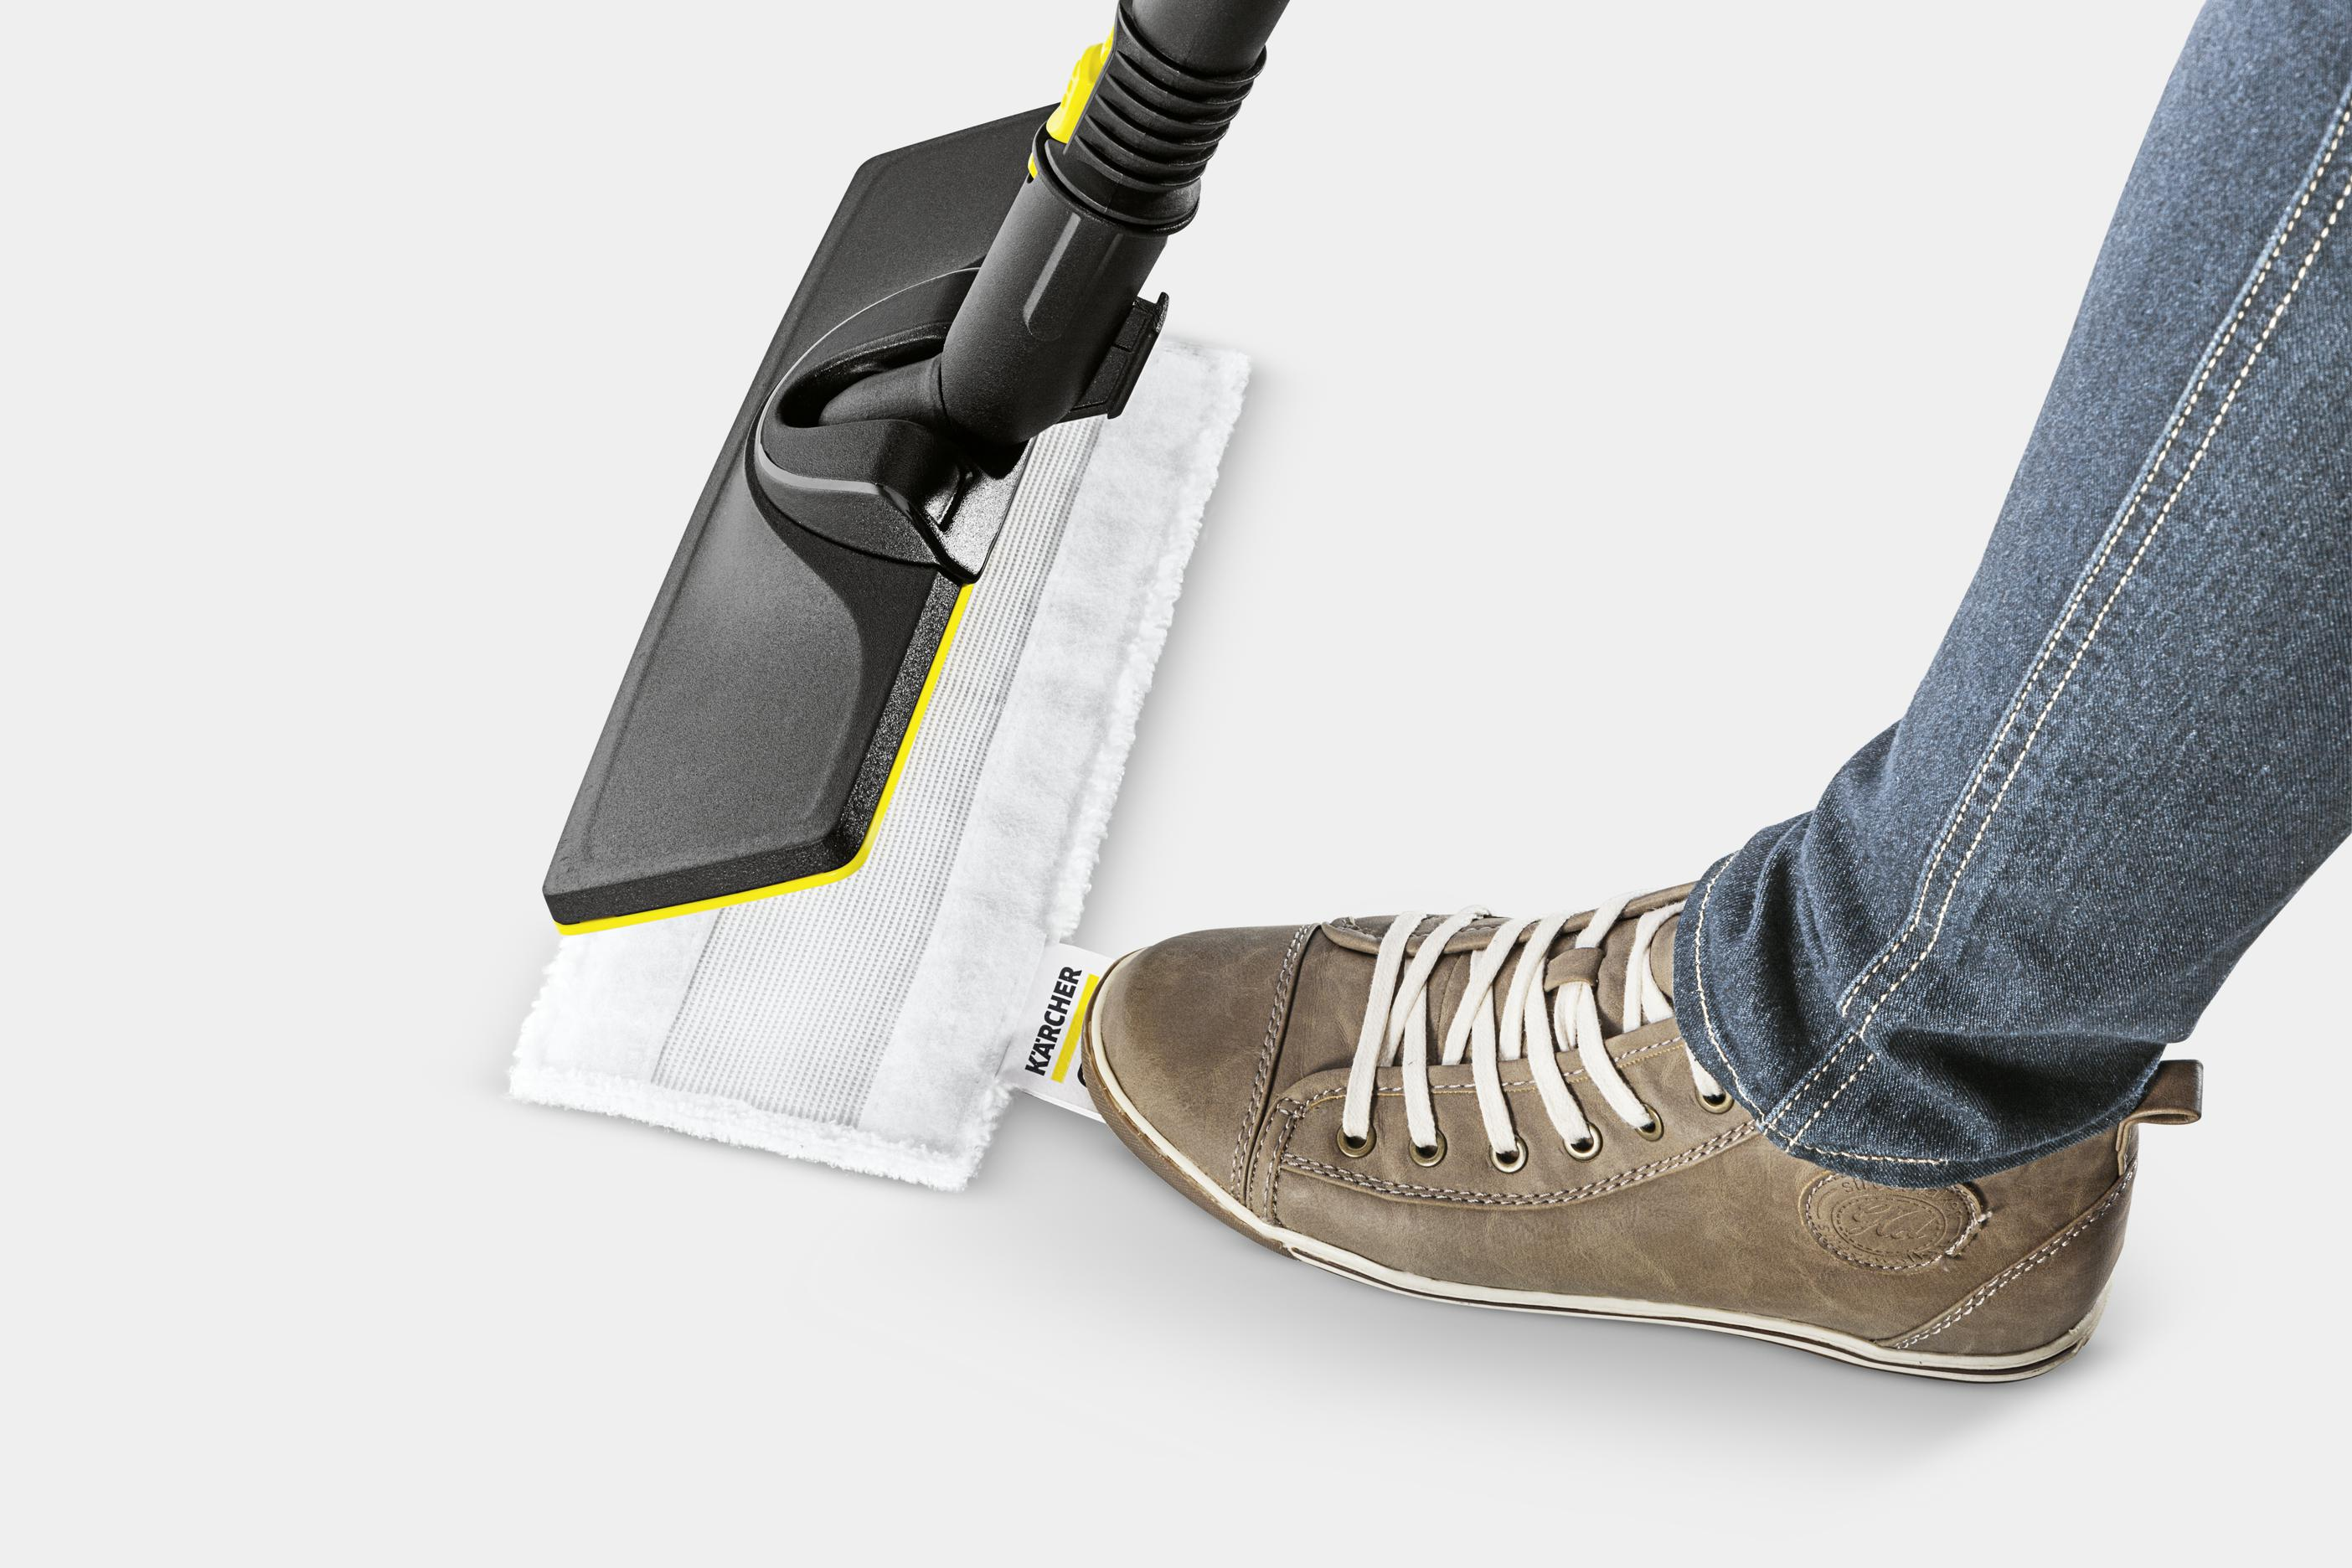 affordable easy step fixing - HD1600×1067